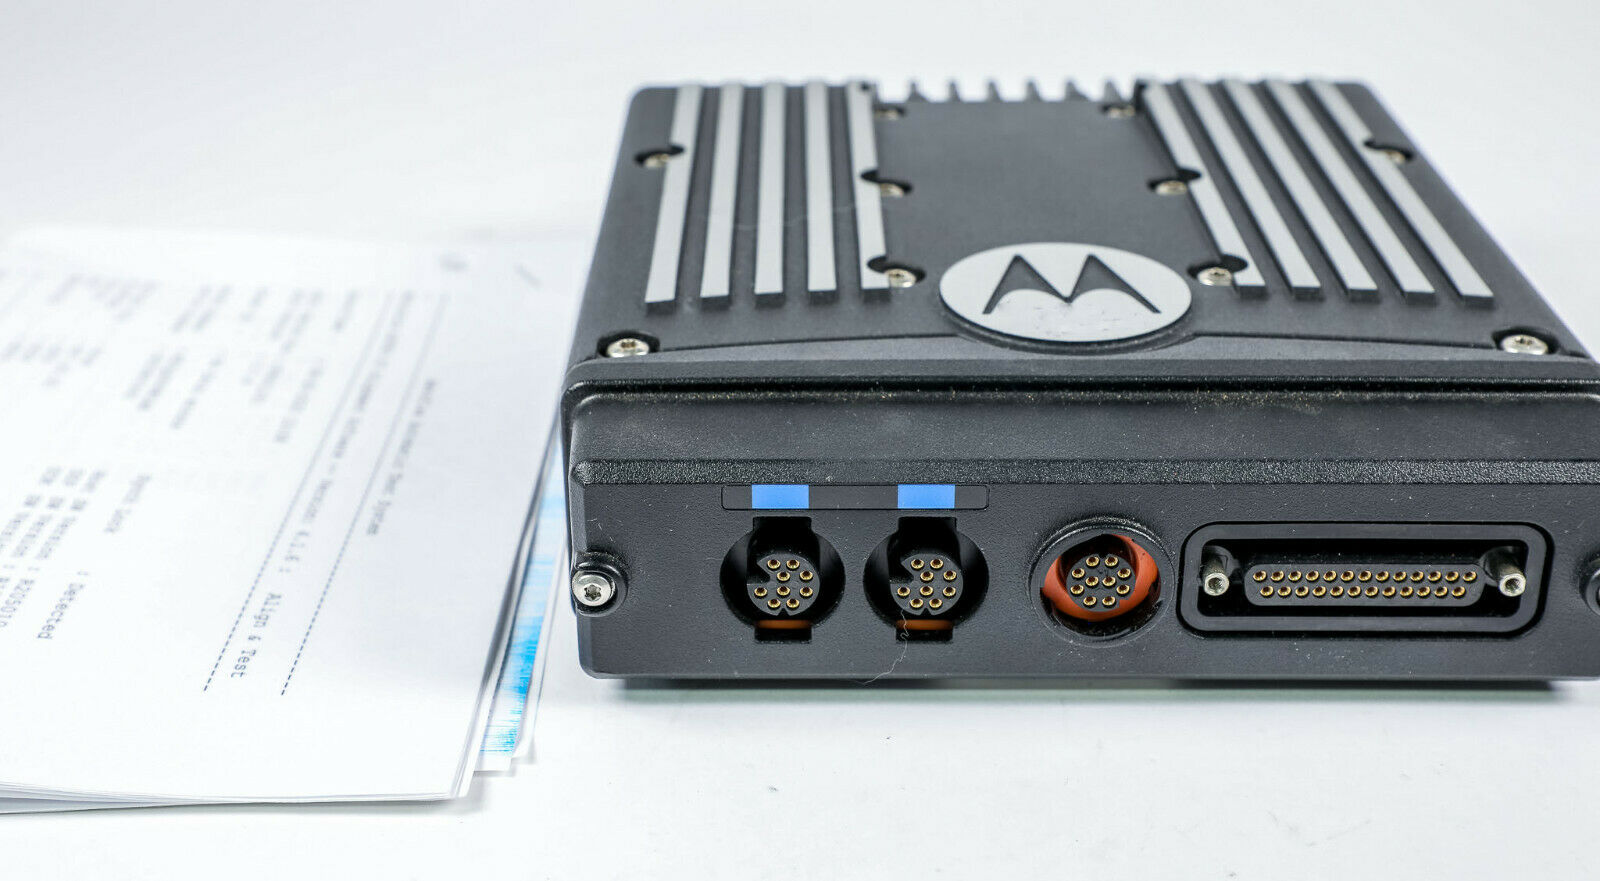 Motorola XTL5000 UHF 380-470MHz Astro25 mobile Brick with TIB Only. Buy it now for 390.00